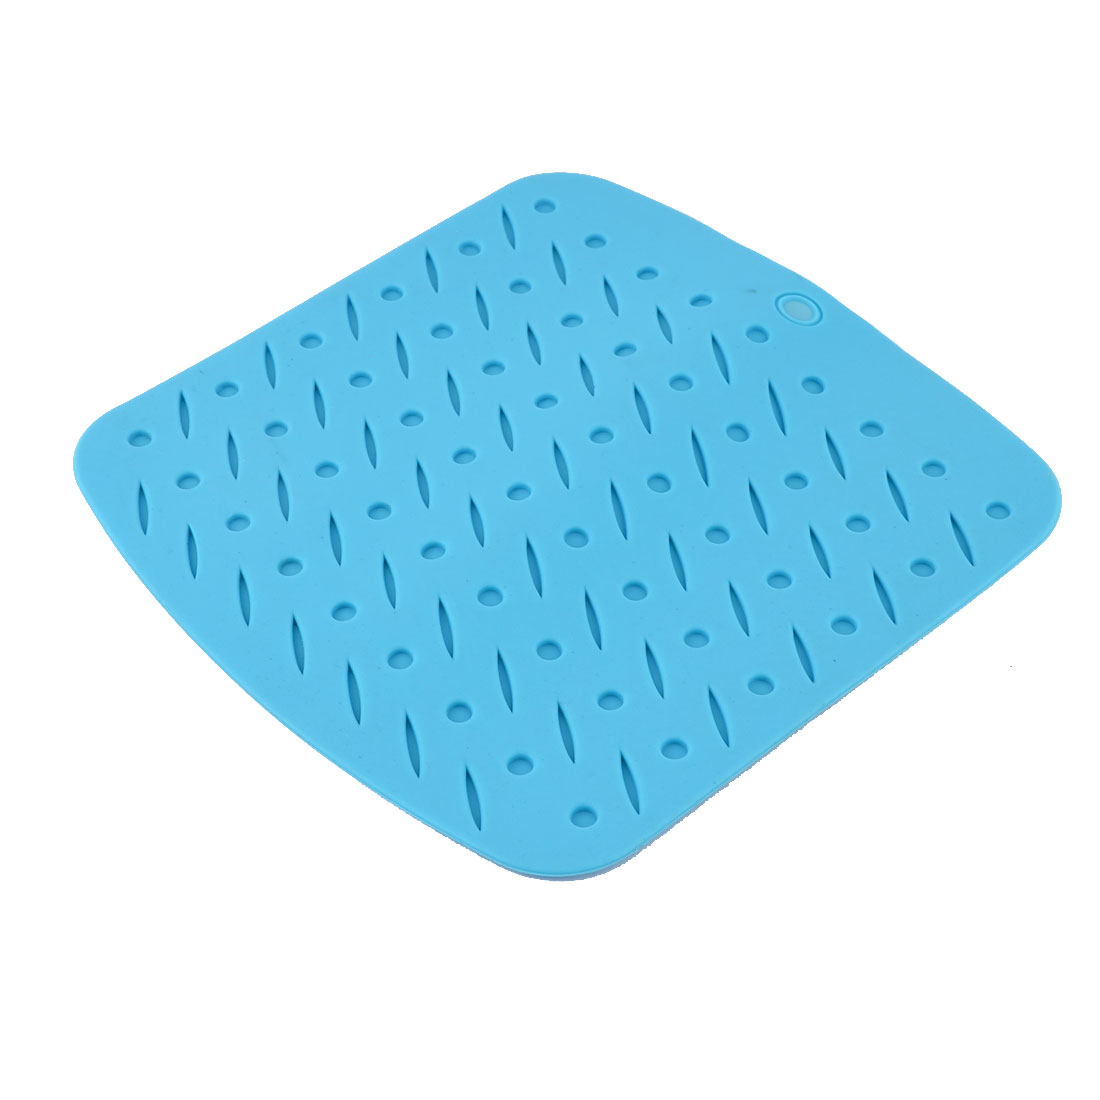 Silicone Square Shaped Heat Resistant Pot Pad Table Mat Placemat Coasters Blue